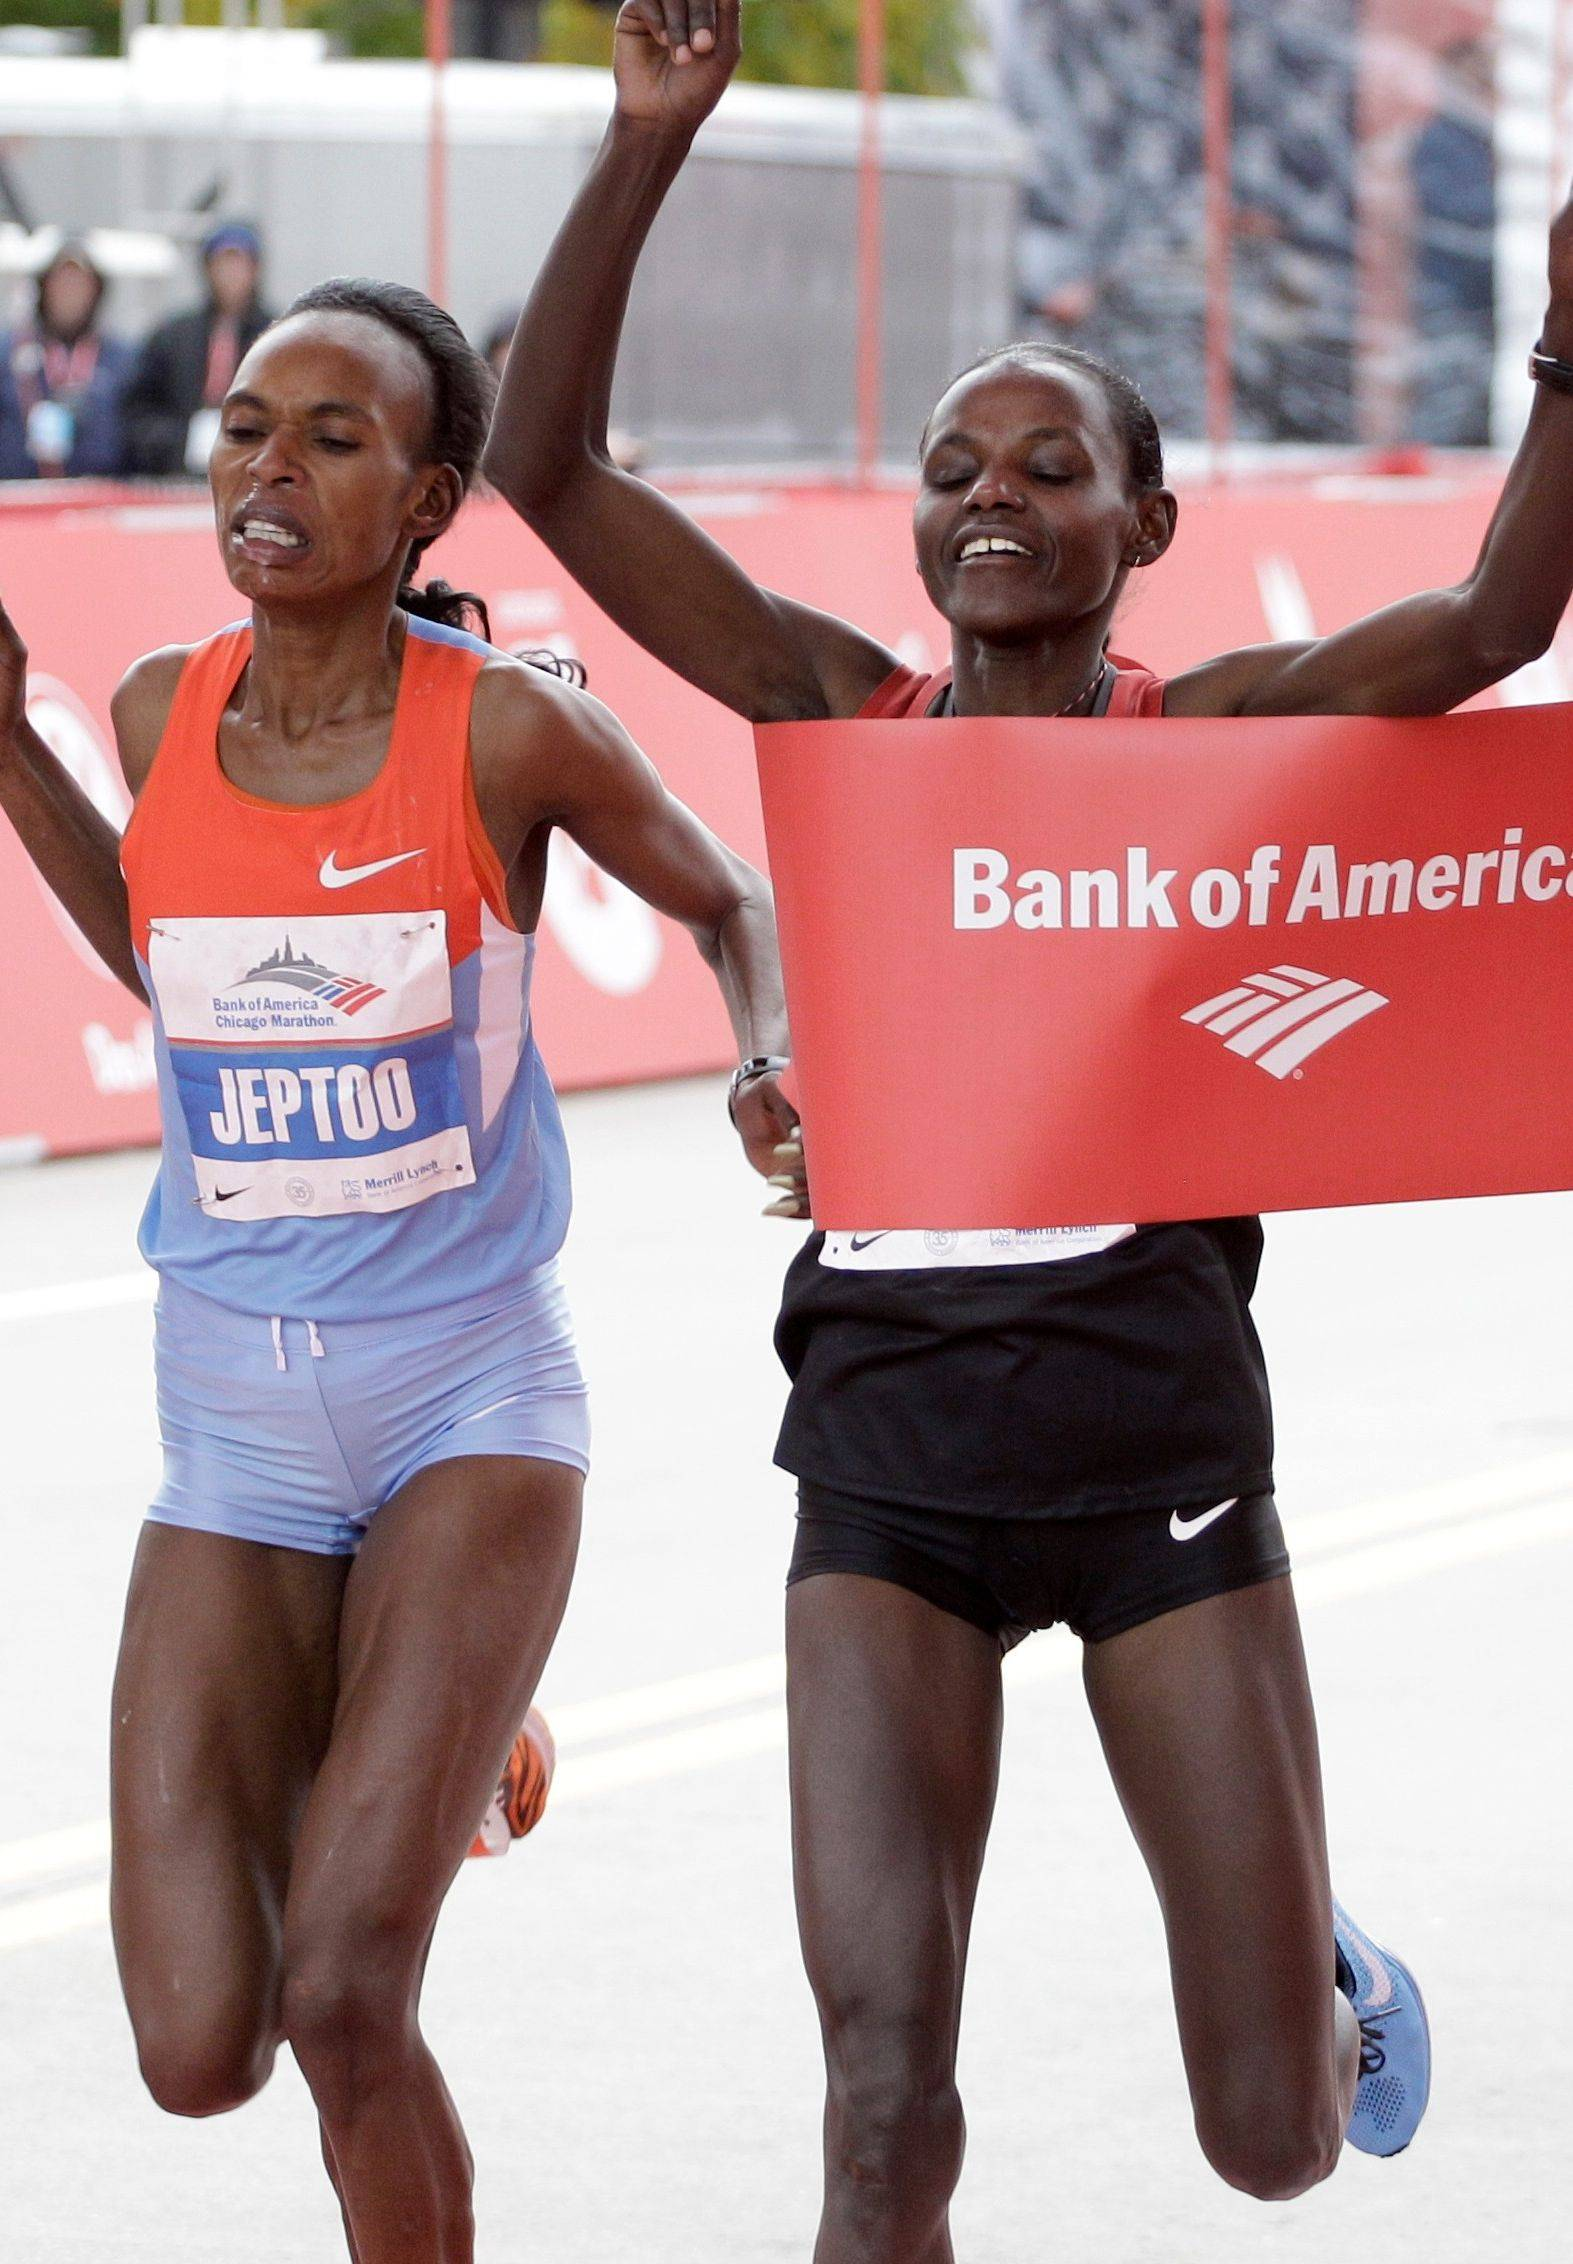 In the closest women's race ever, Ethiopia's Atsede Baysa edges out Kenya's Rita Jeptoo.